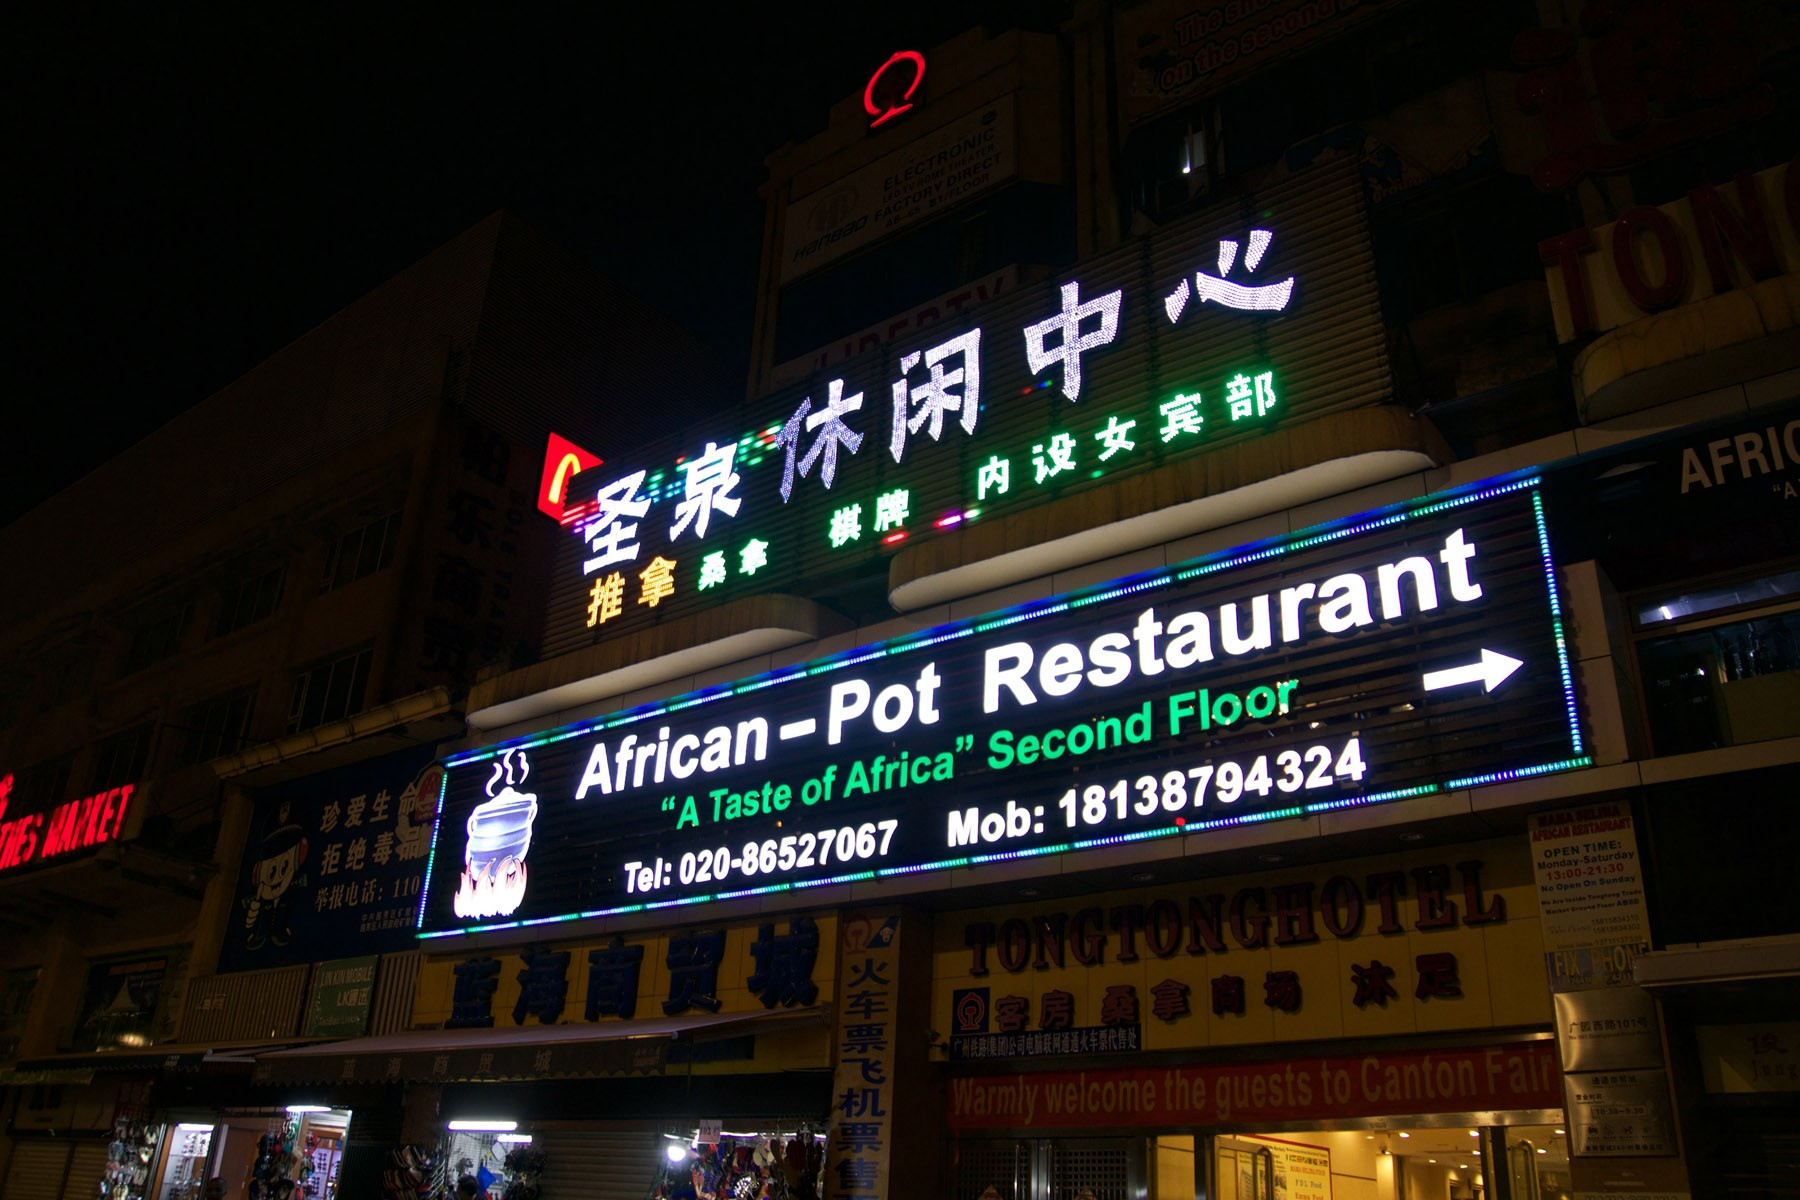 the-african-pot-has-doubles-as-a-community-meeting-place-for-many-africans-in-guangzhou-photo-by-hangwei-li